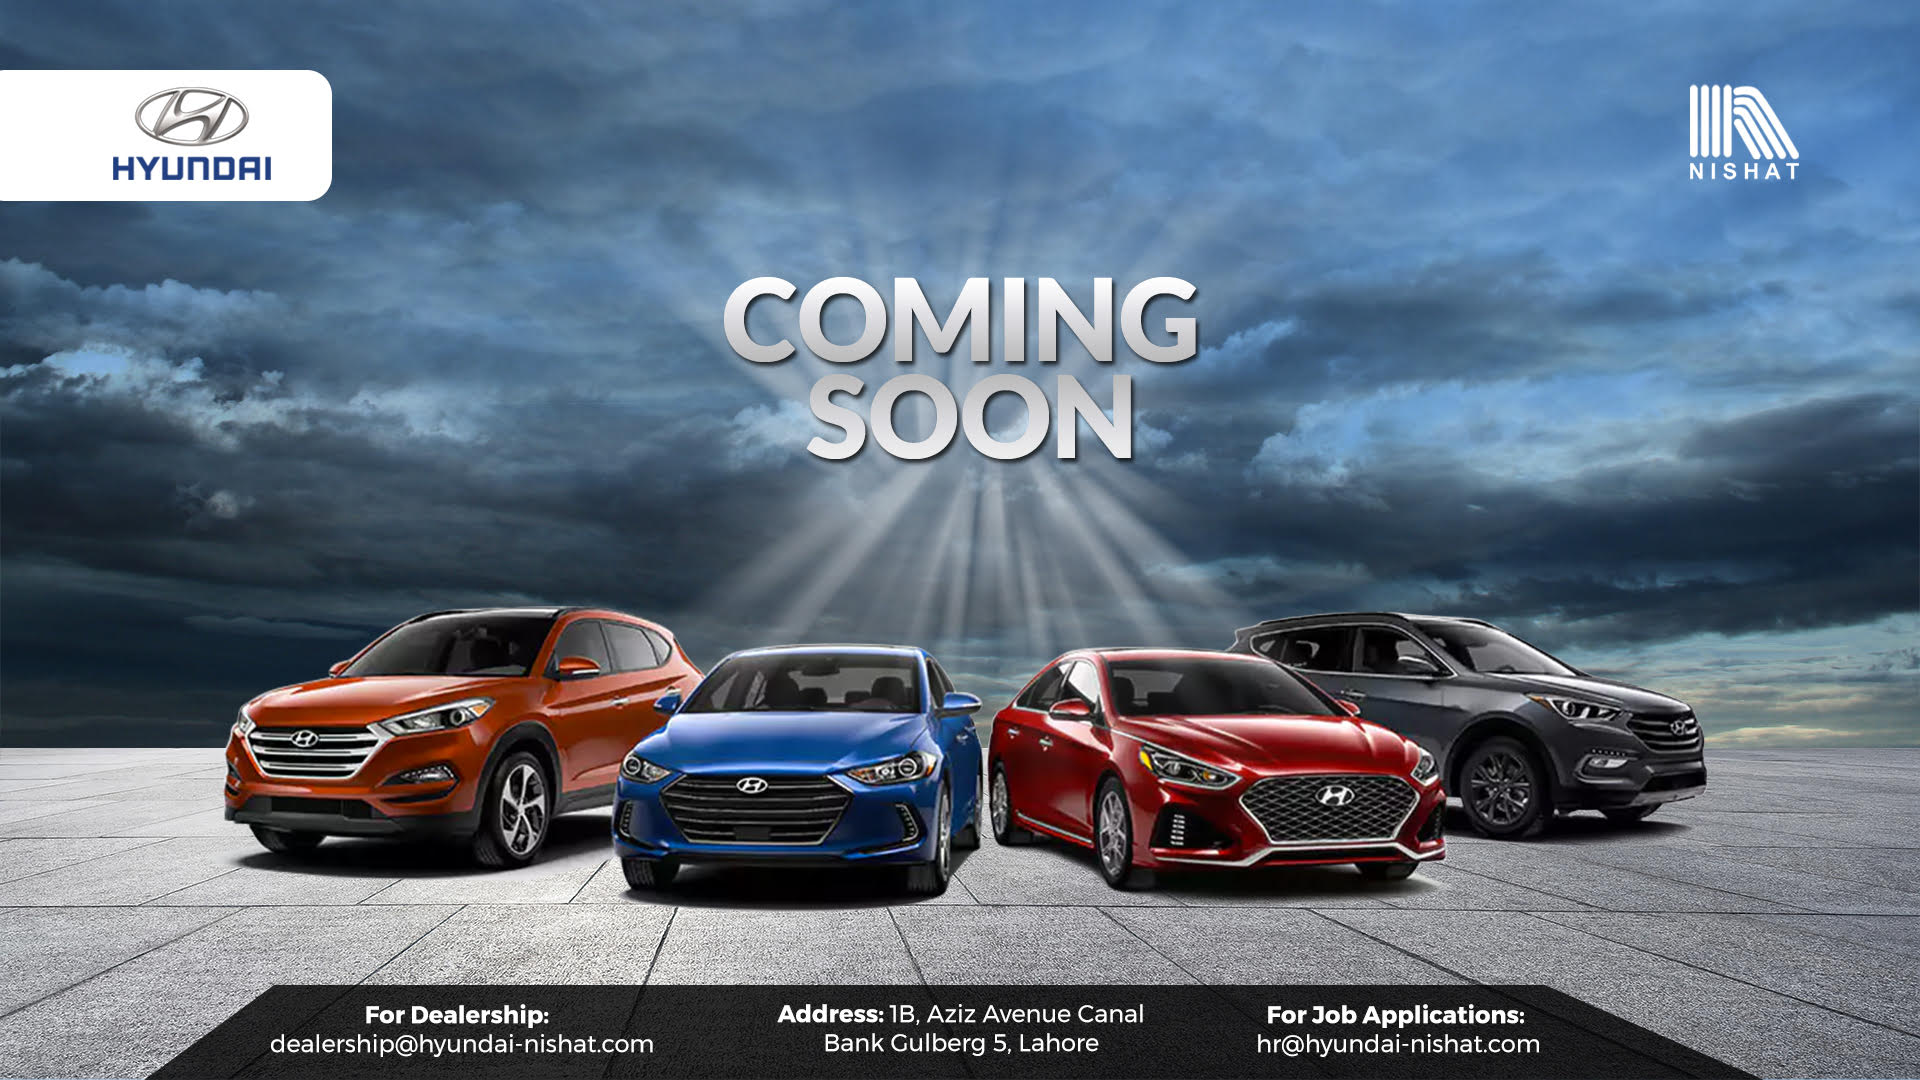 Hyundai-Nishat Website Hints a Range of Upcoming Vehicles 5